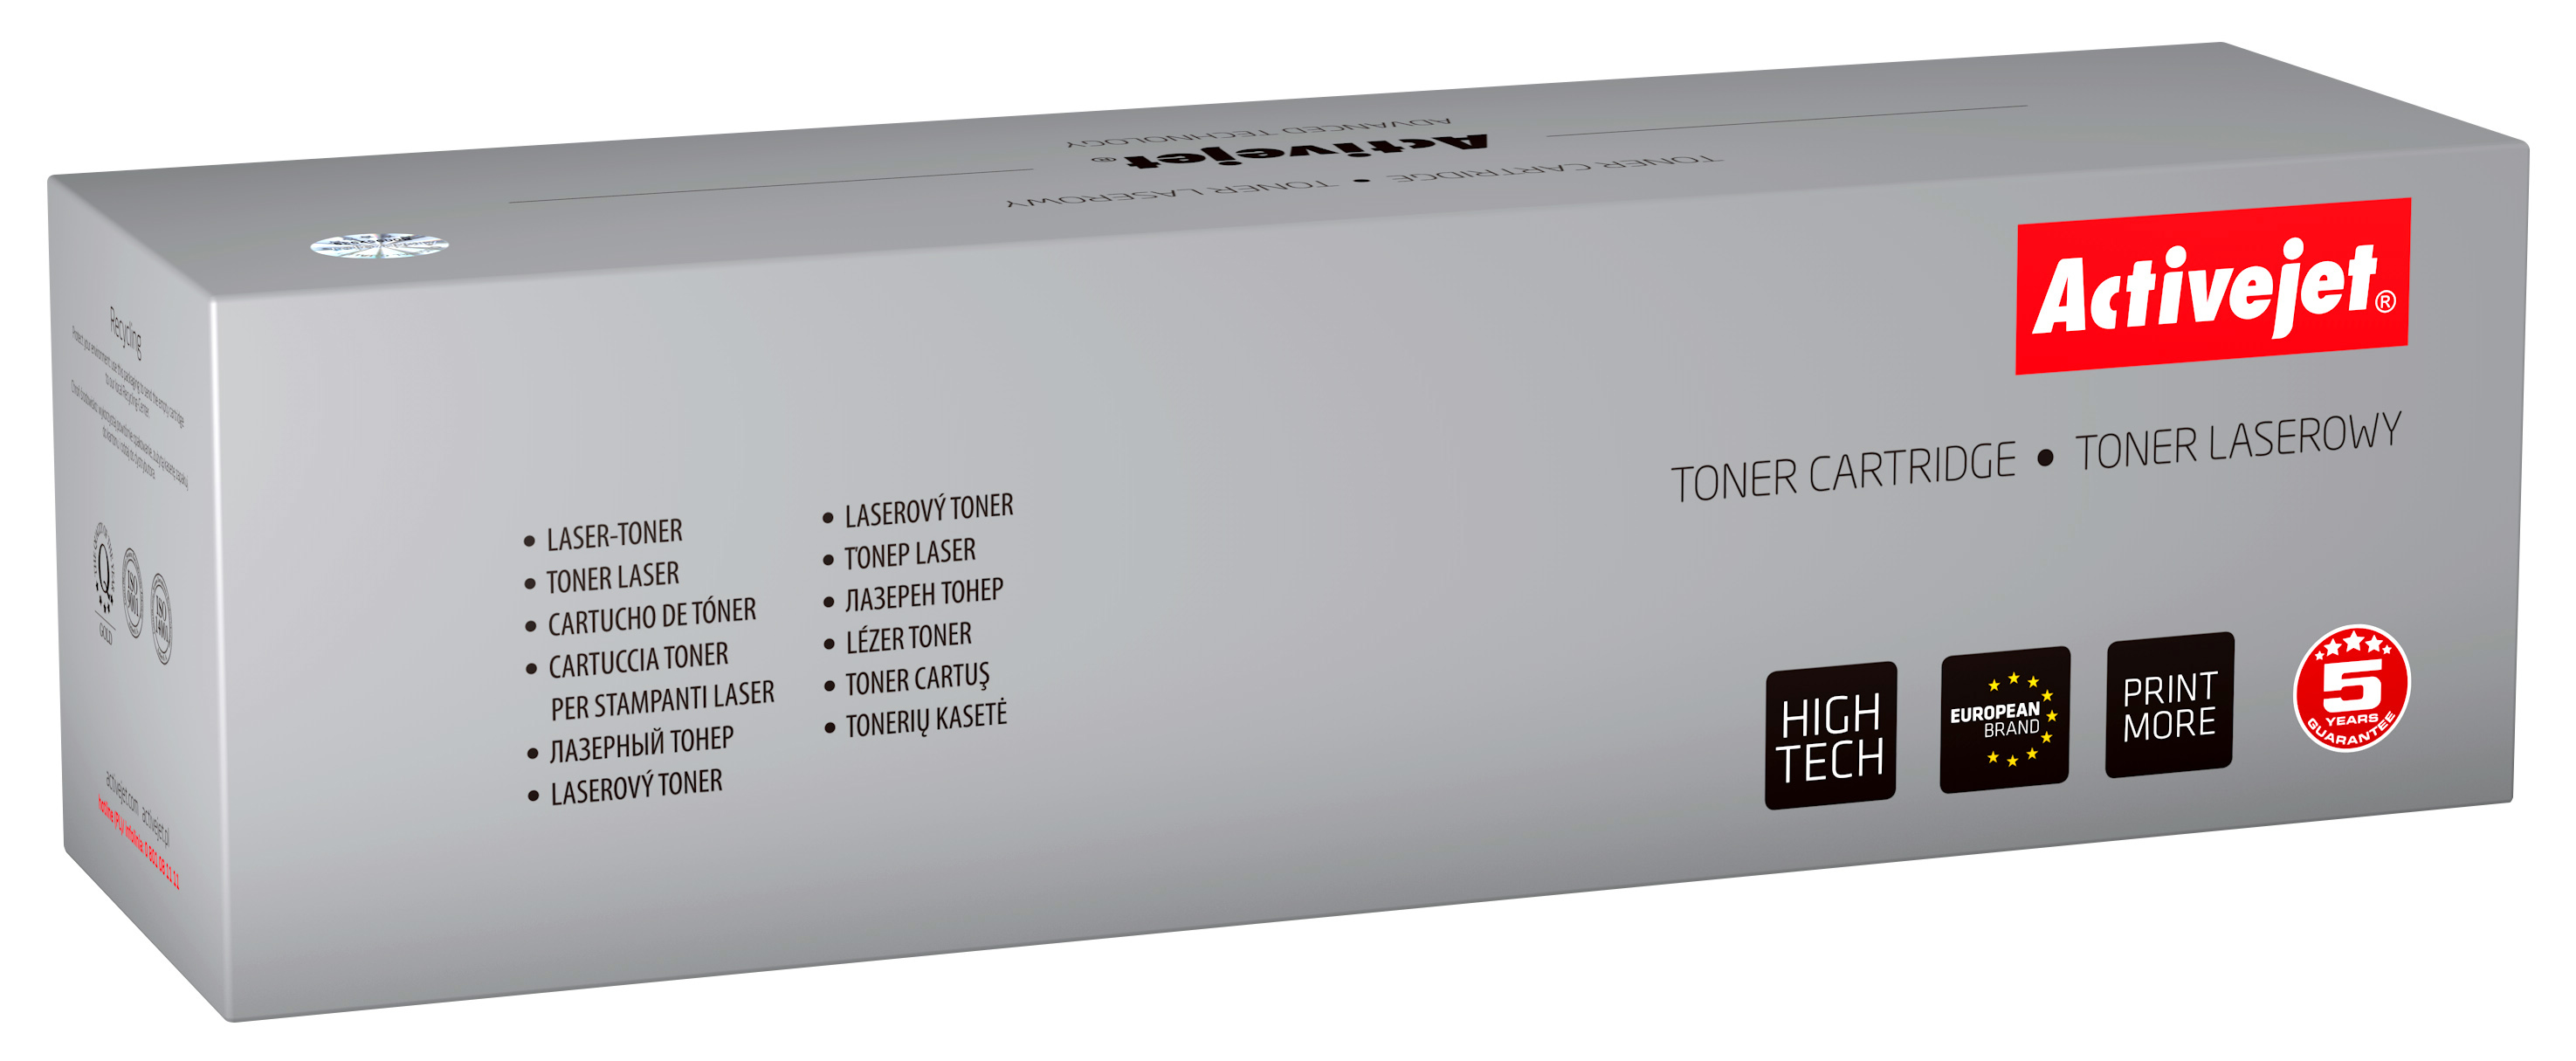 Activejet toner do Minolta TN324M new ATM-324MN